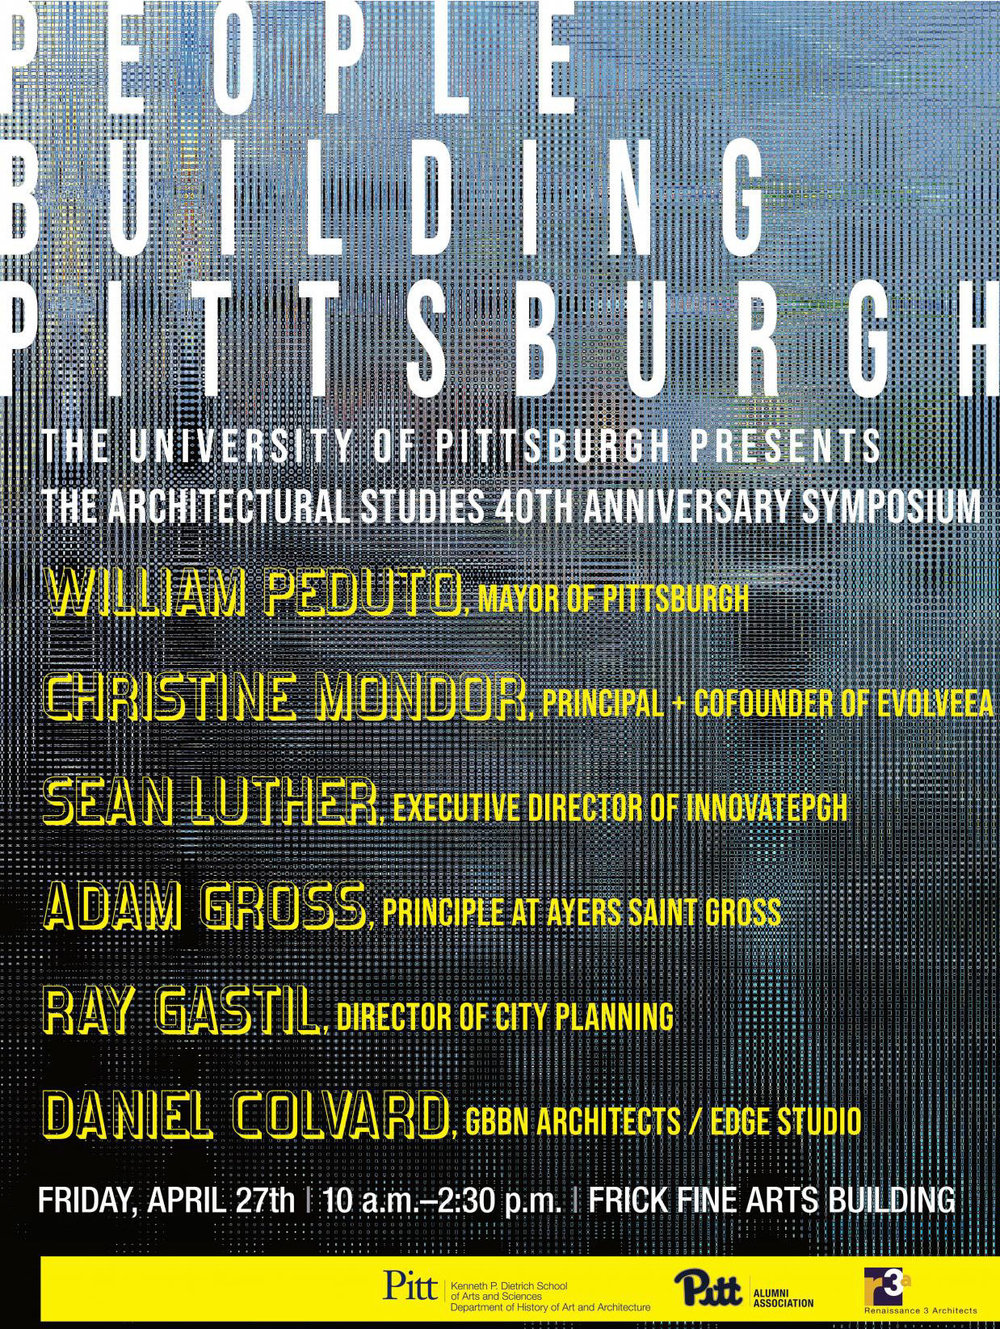 PeopleBuildingPittsburgh_SmallFilePoster.jpg